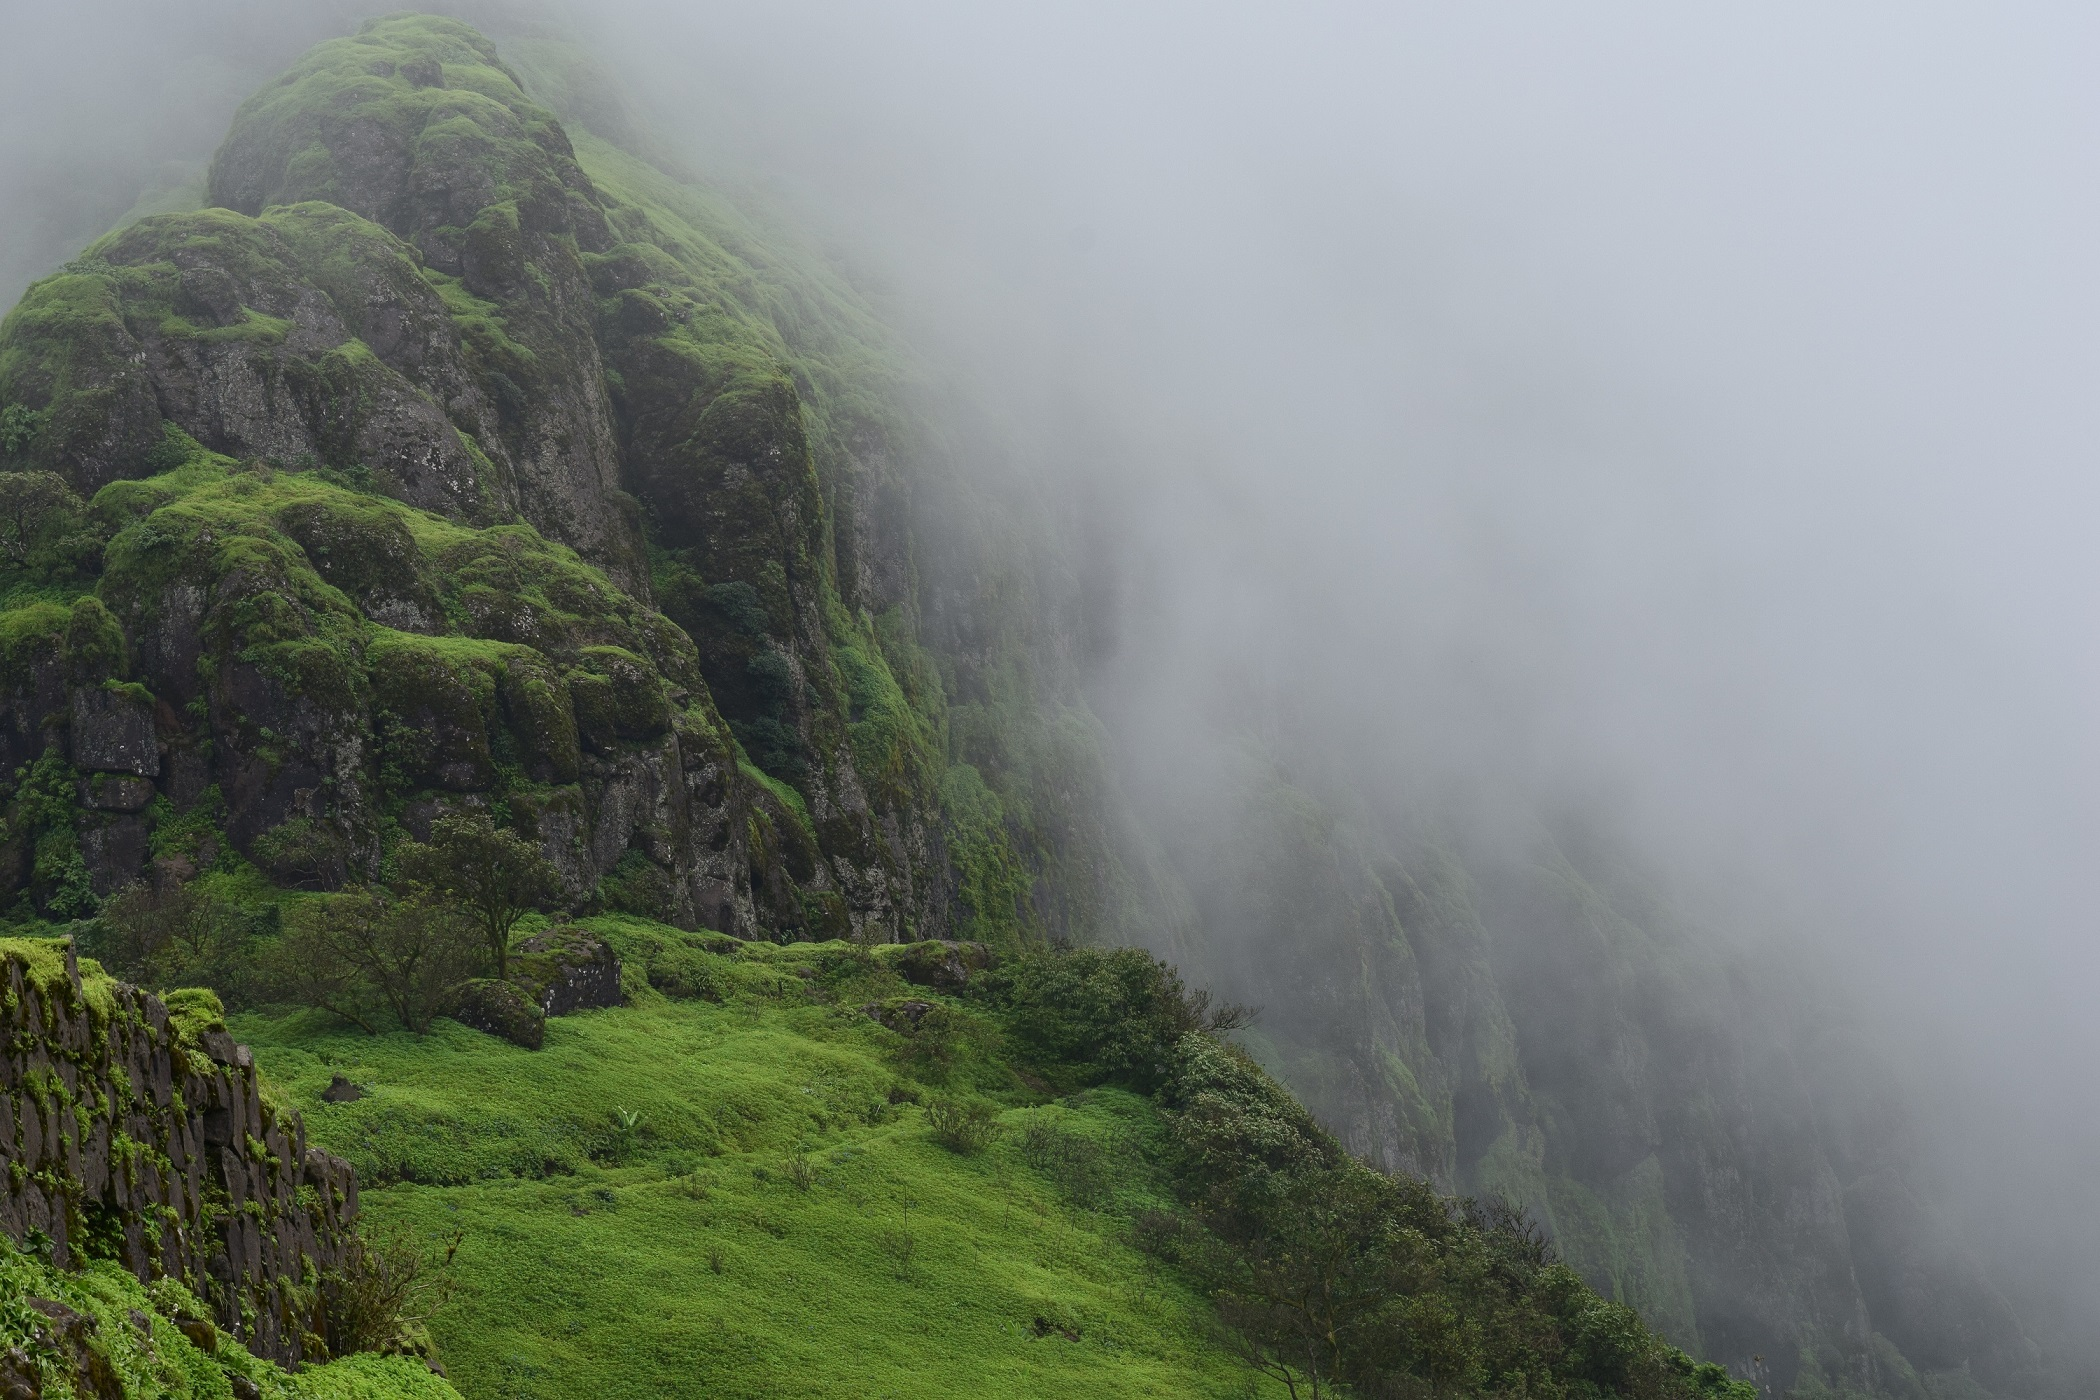 Rajgad Fort trekking photos mansoon DSLR 1 1 Rajgad Fort Pune - Information & Awesome Trekking experience